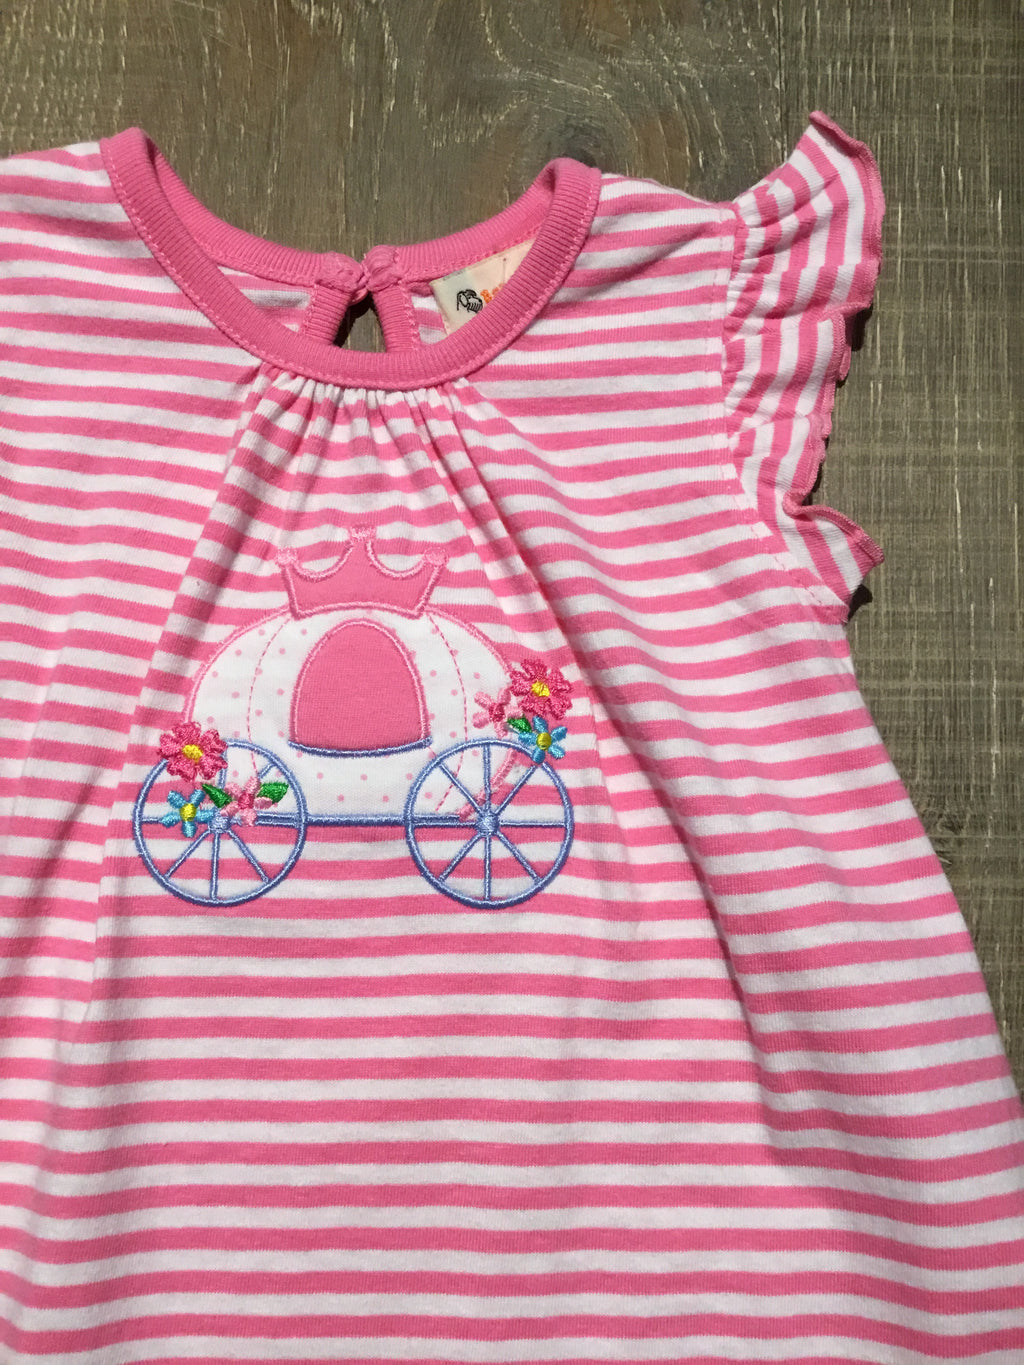 Princess Carriage Pink Stripe Top